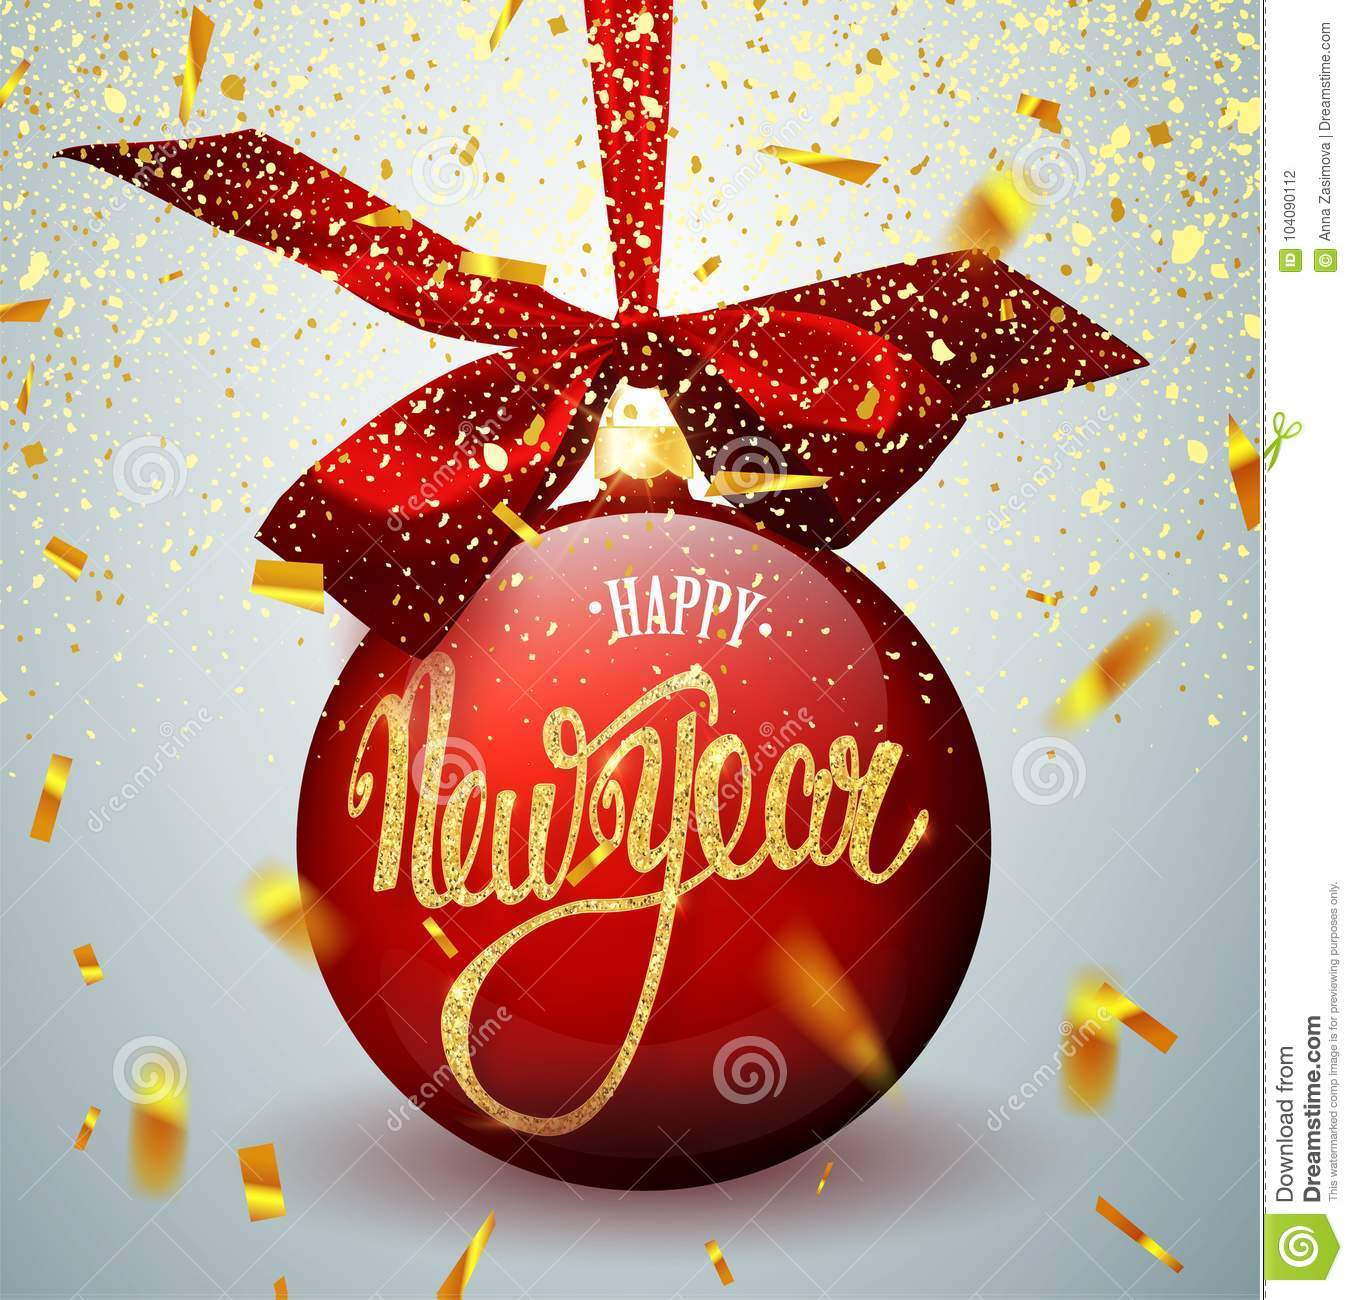 Red Christmas ball with ribbon and a bow, on winter background with snow and snowflakes. Merry Christmas and Happy New Year 2018.